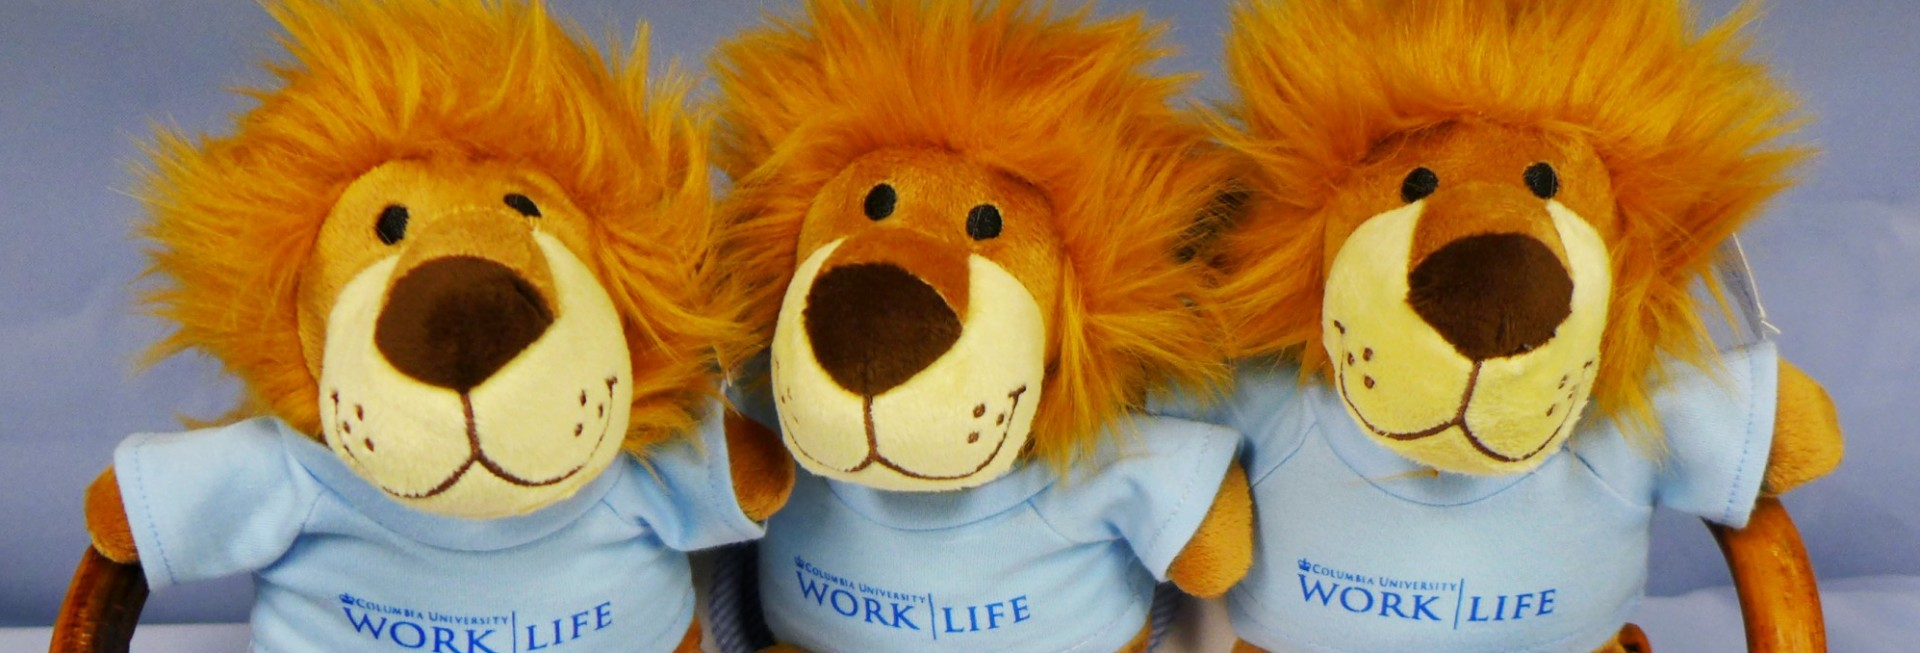 Work/Life Lions